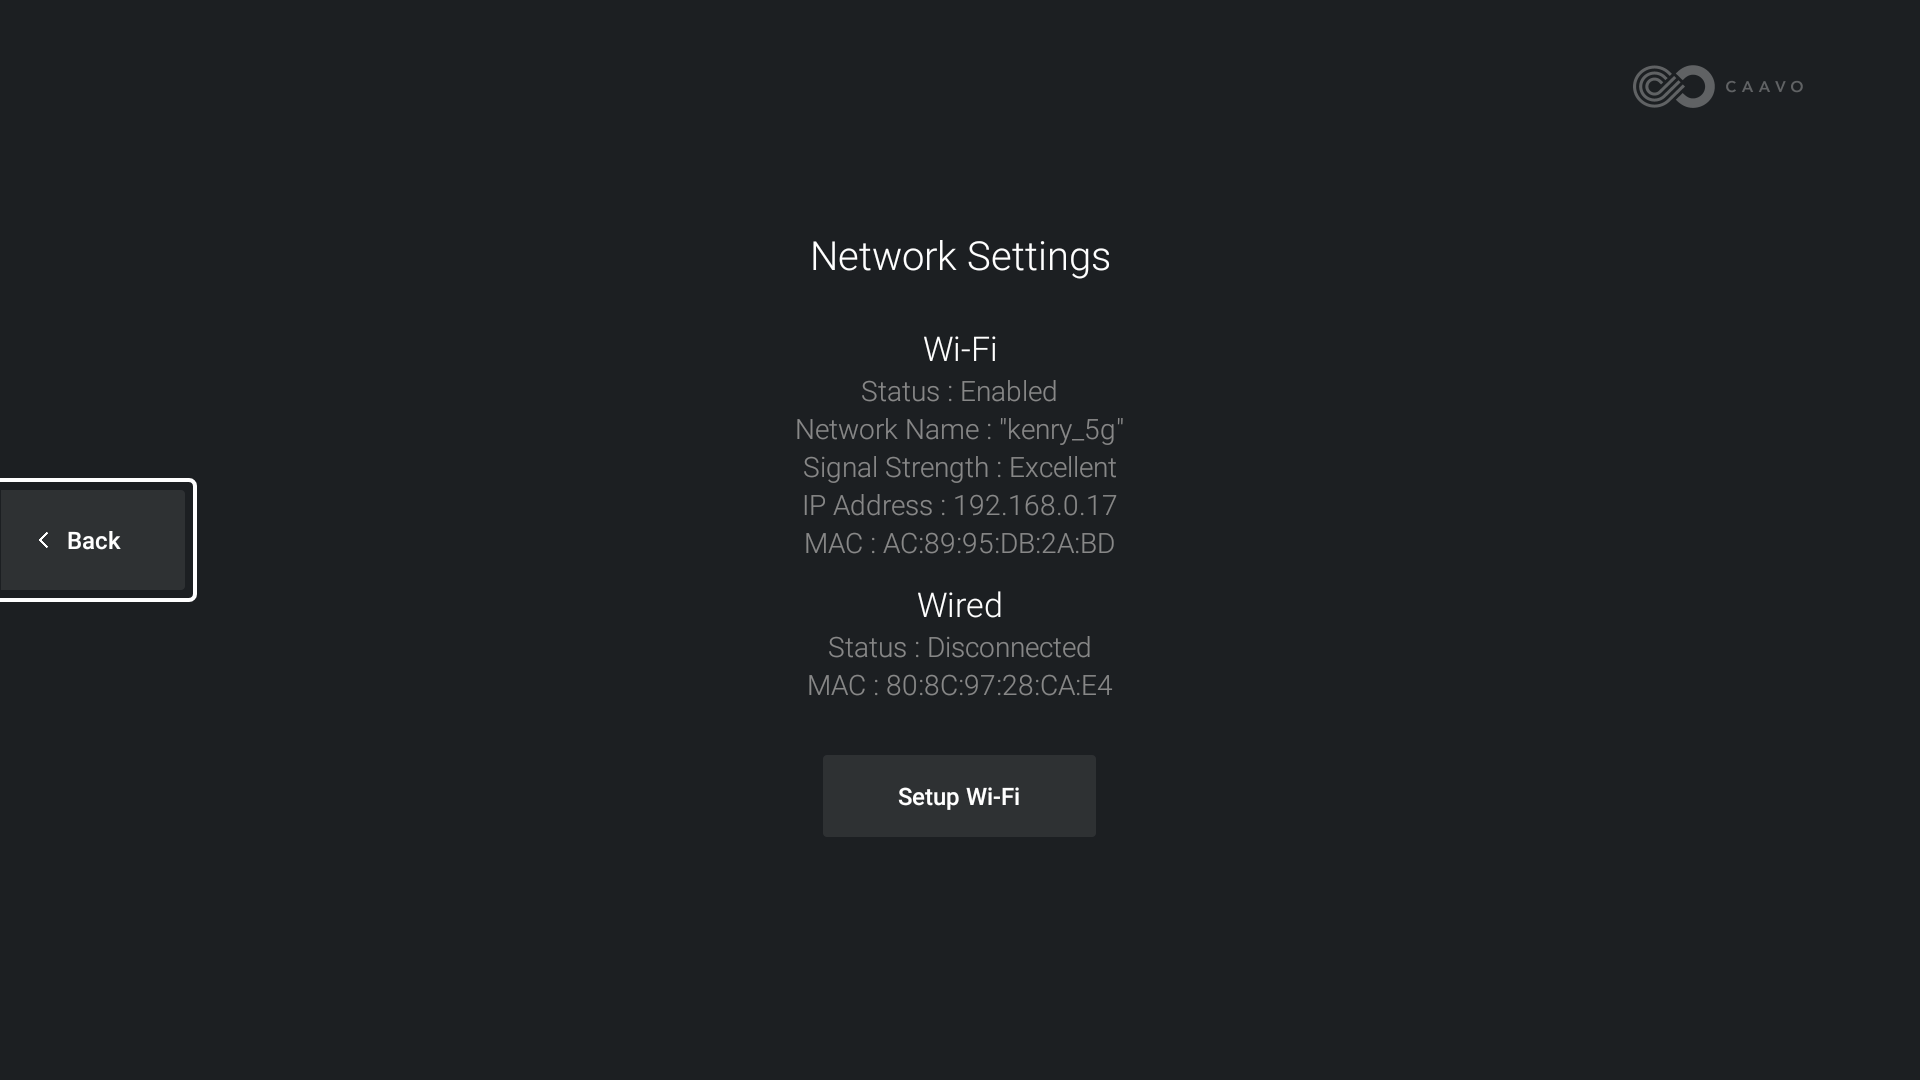 settings_network_wifi.png